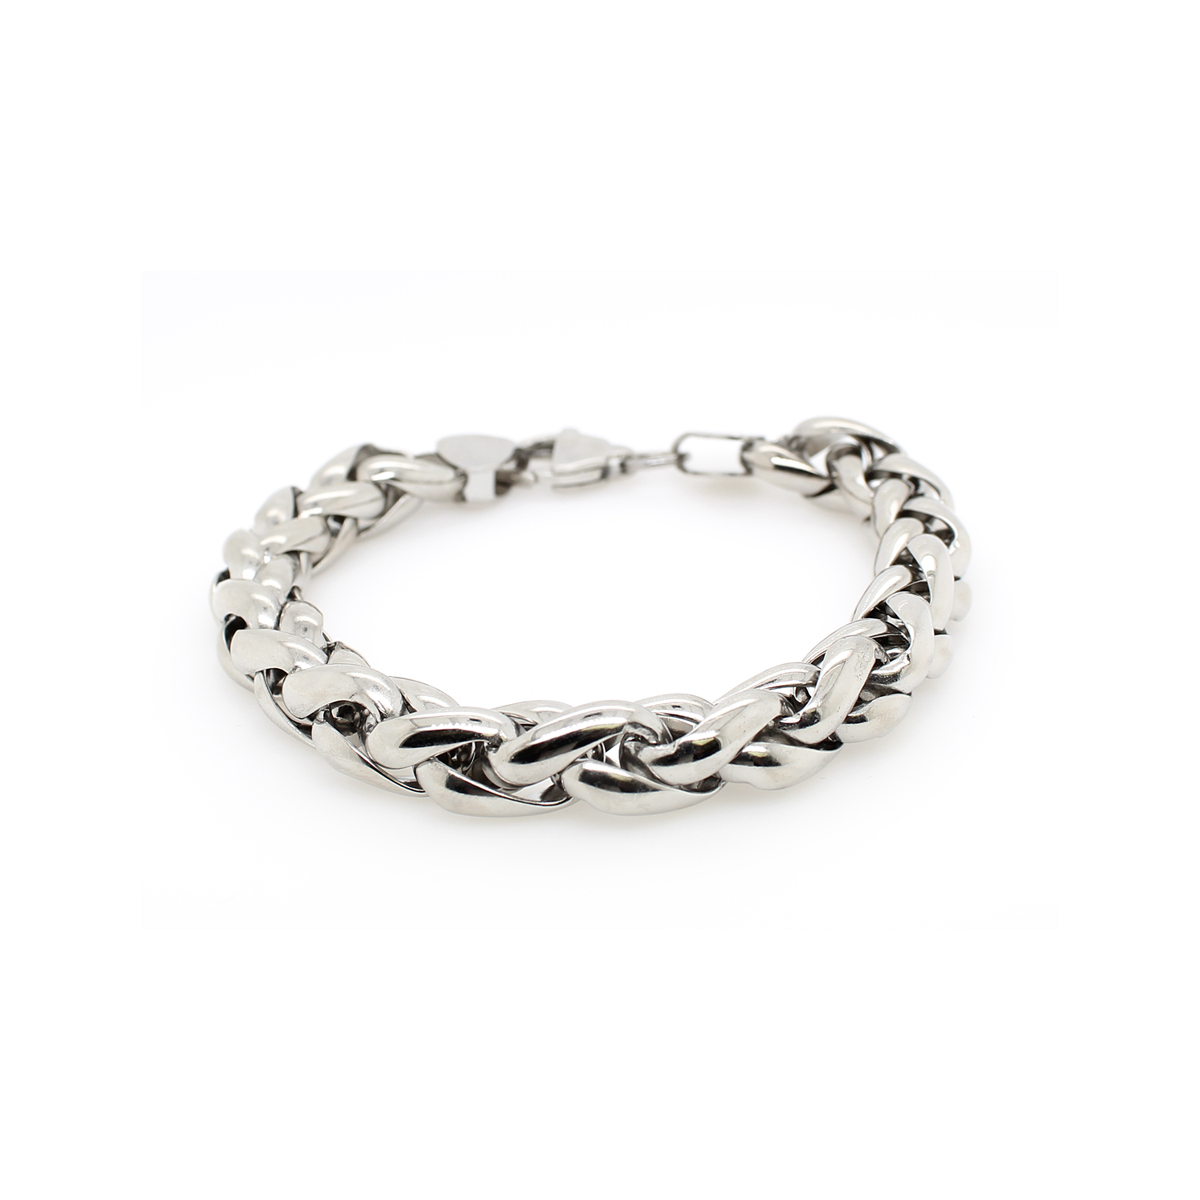 Royal Chain Stainles Steel Braided Bracelet